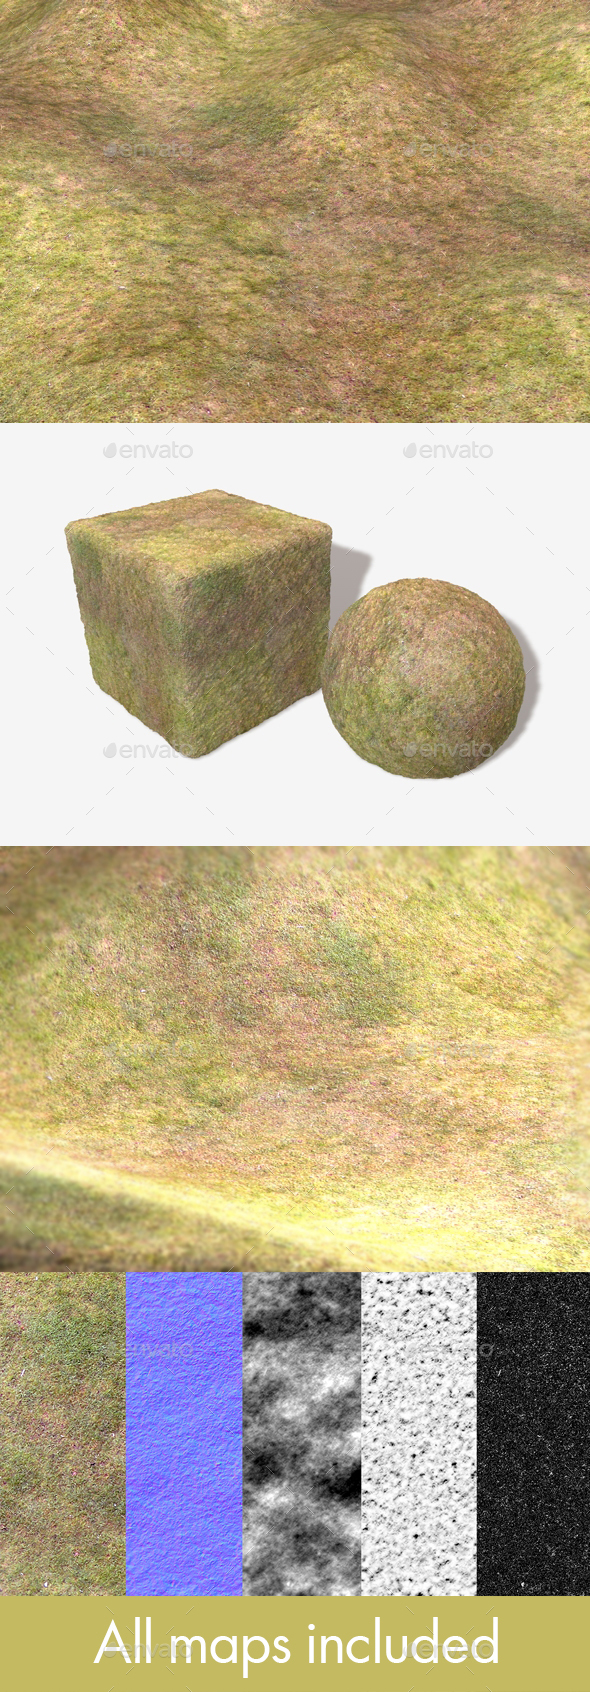 Dry Grass Birds Eye View Seamless Texture - 3DOcean Item for Sale